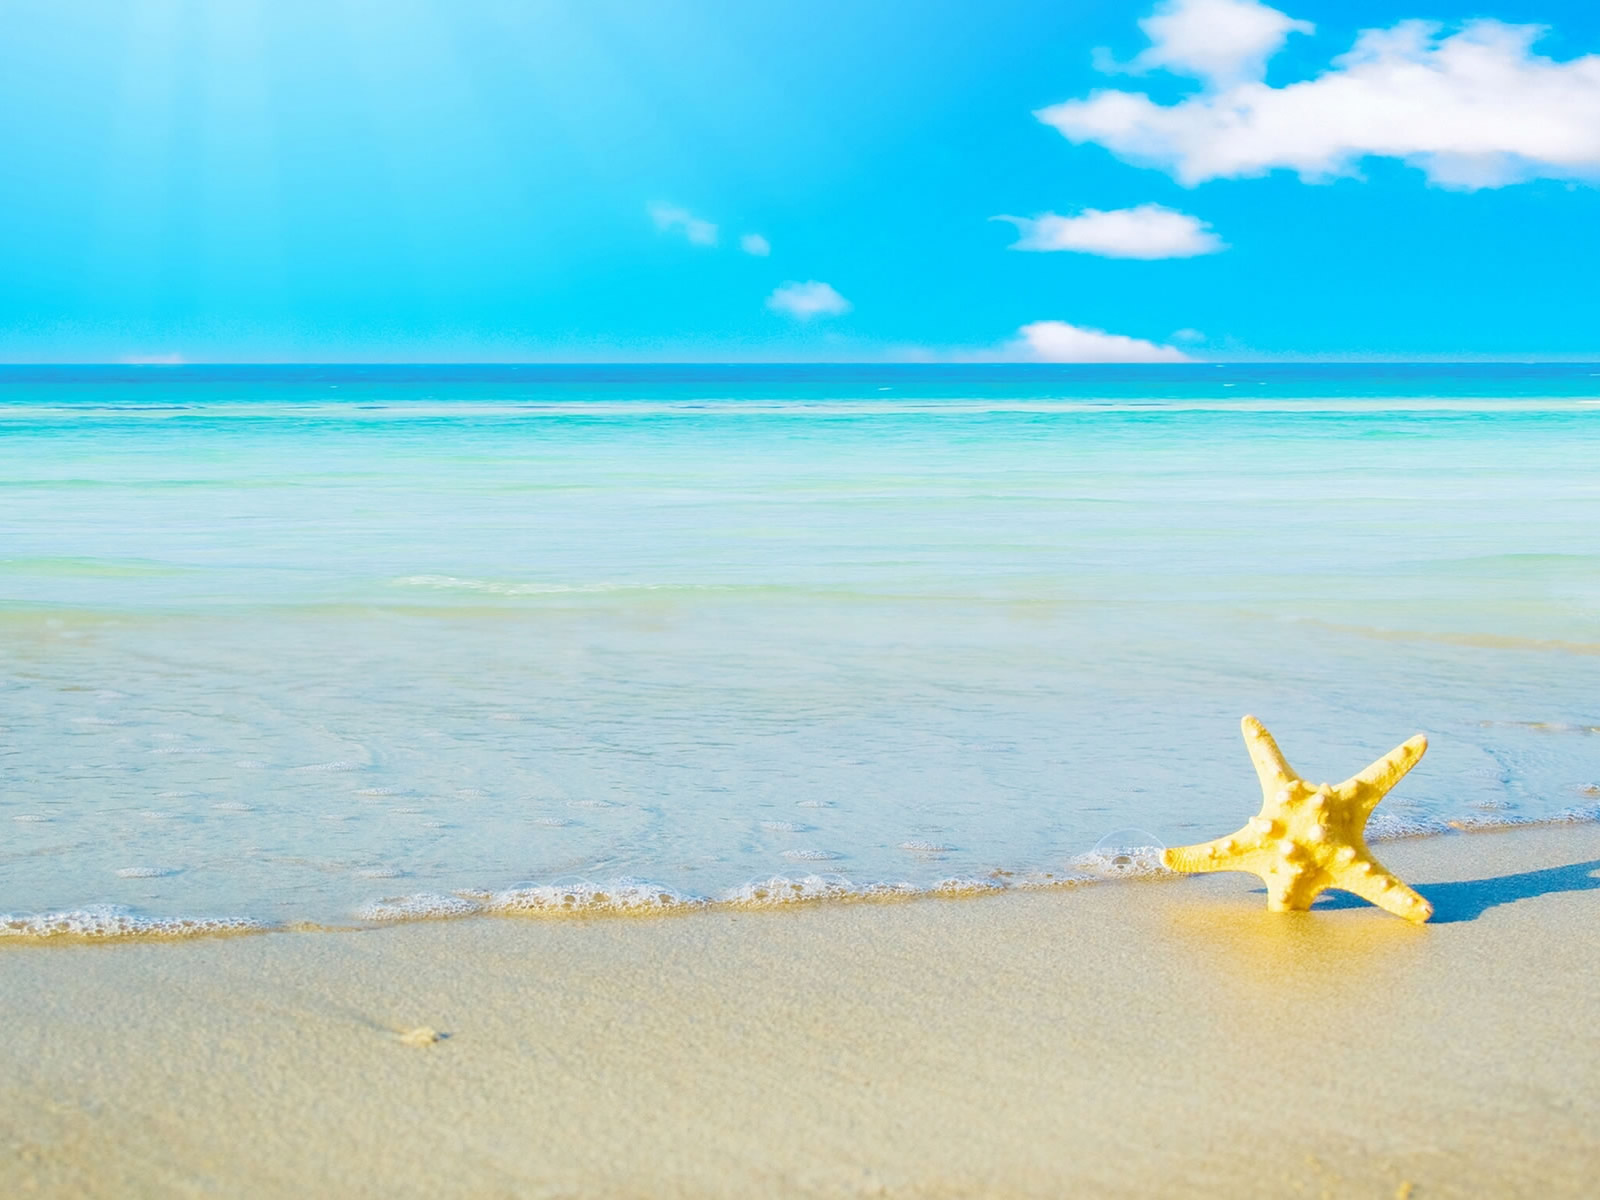 Sea Star on a Beach 218.48 Kb